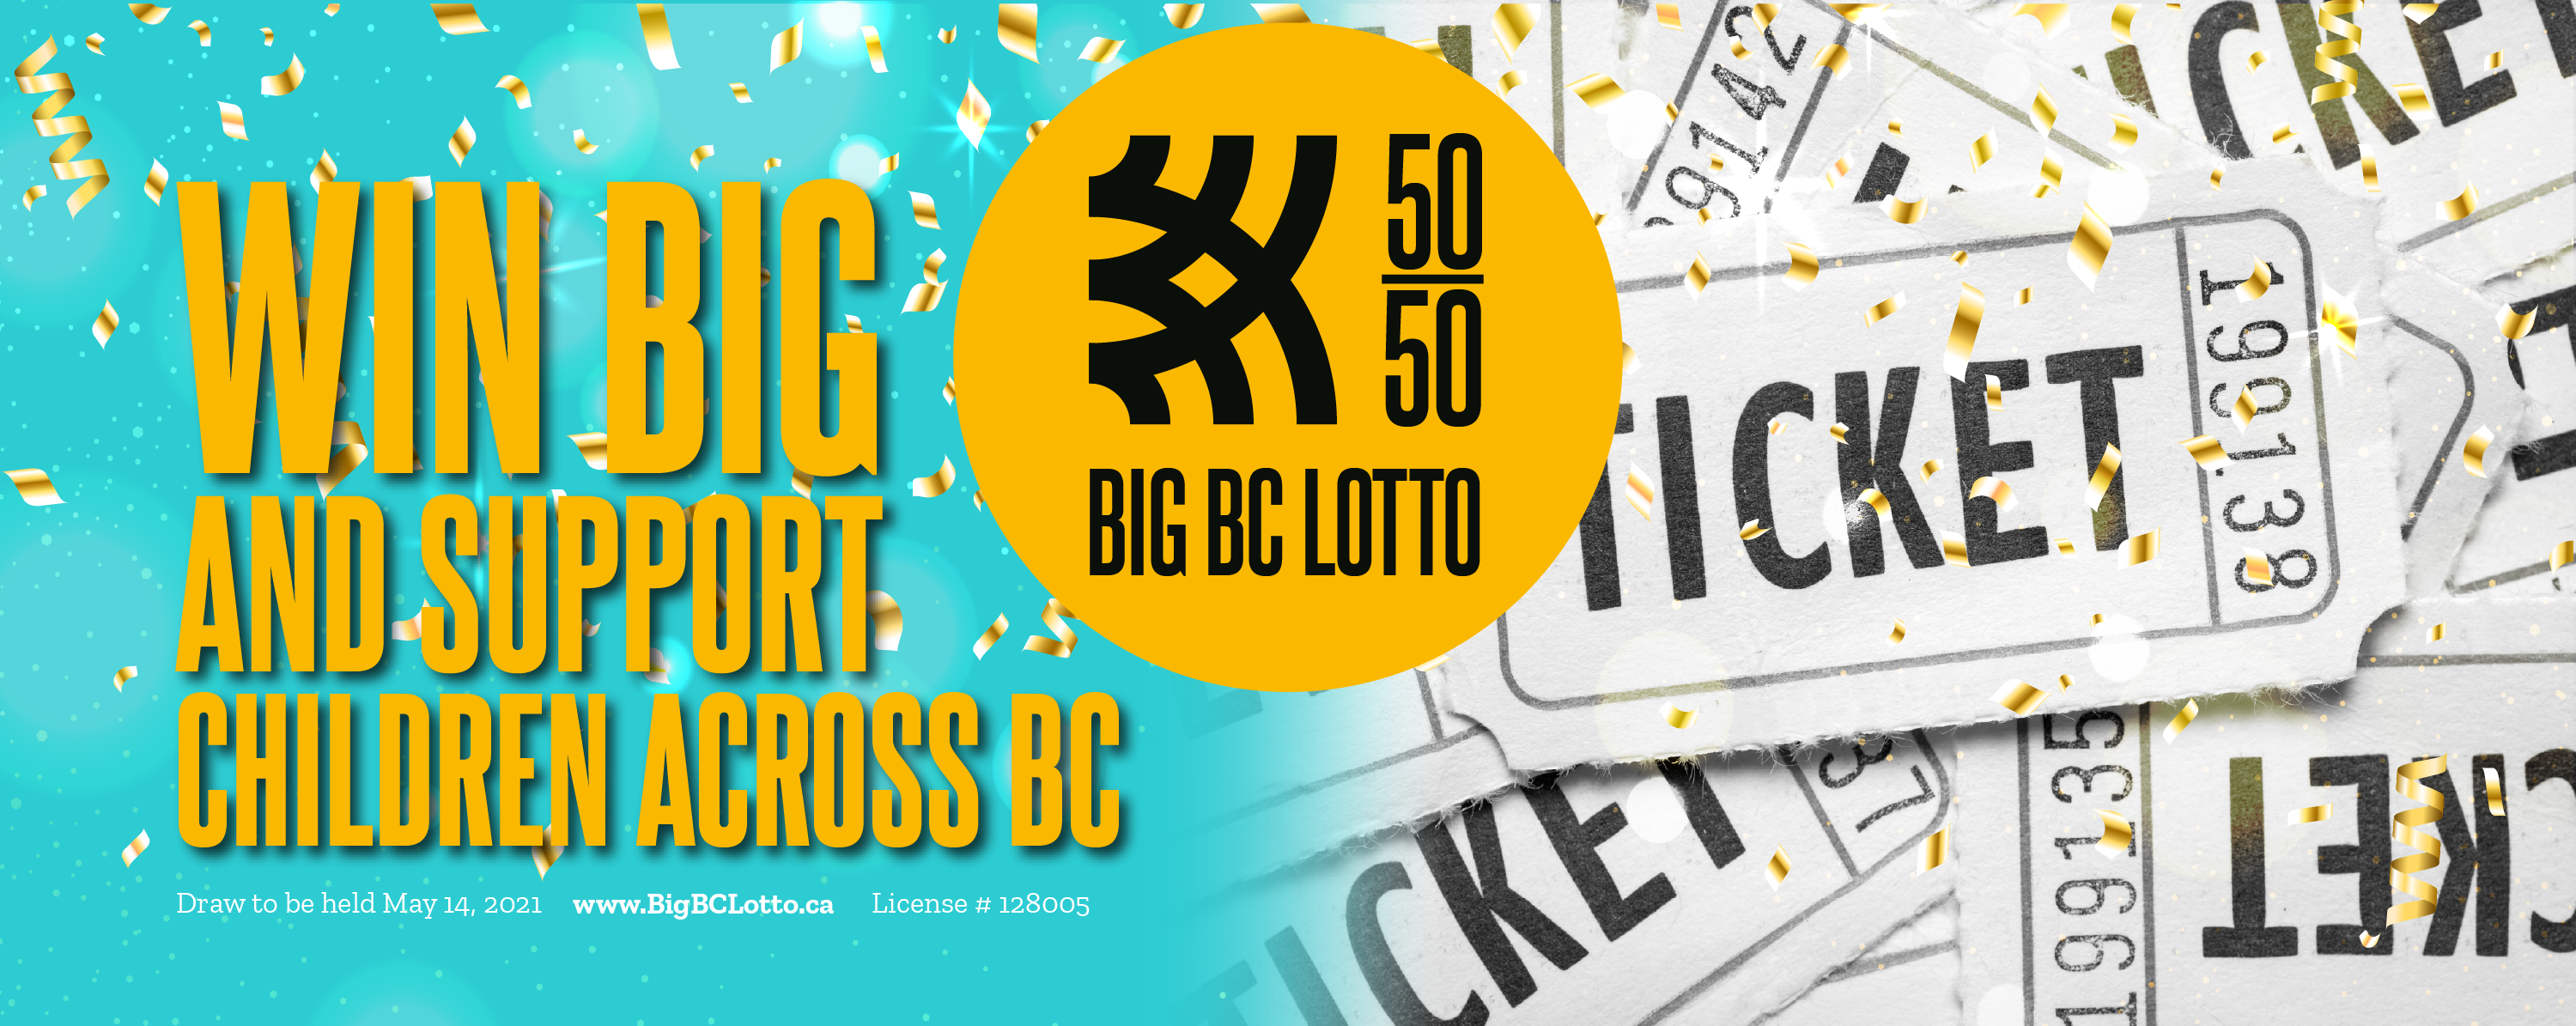 Win big and support children across BC.